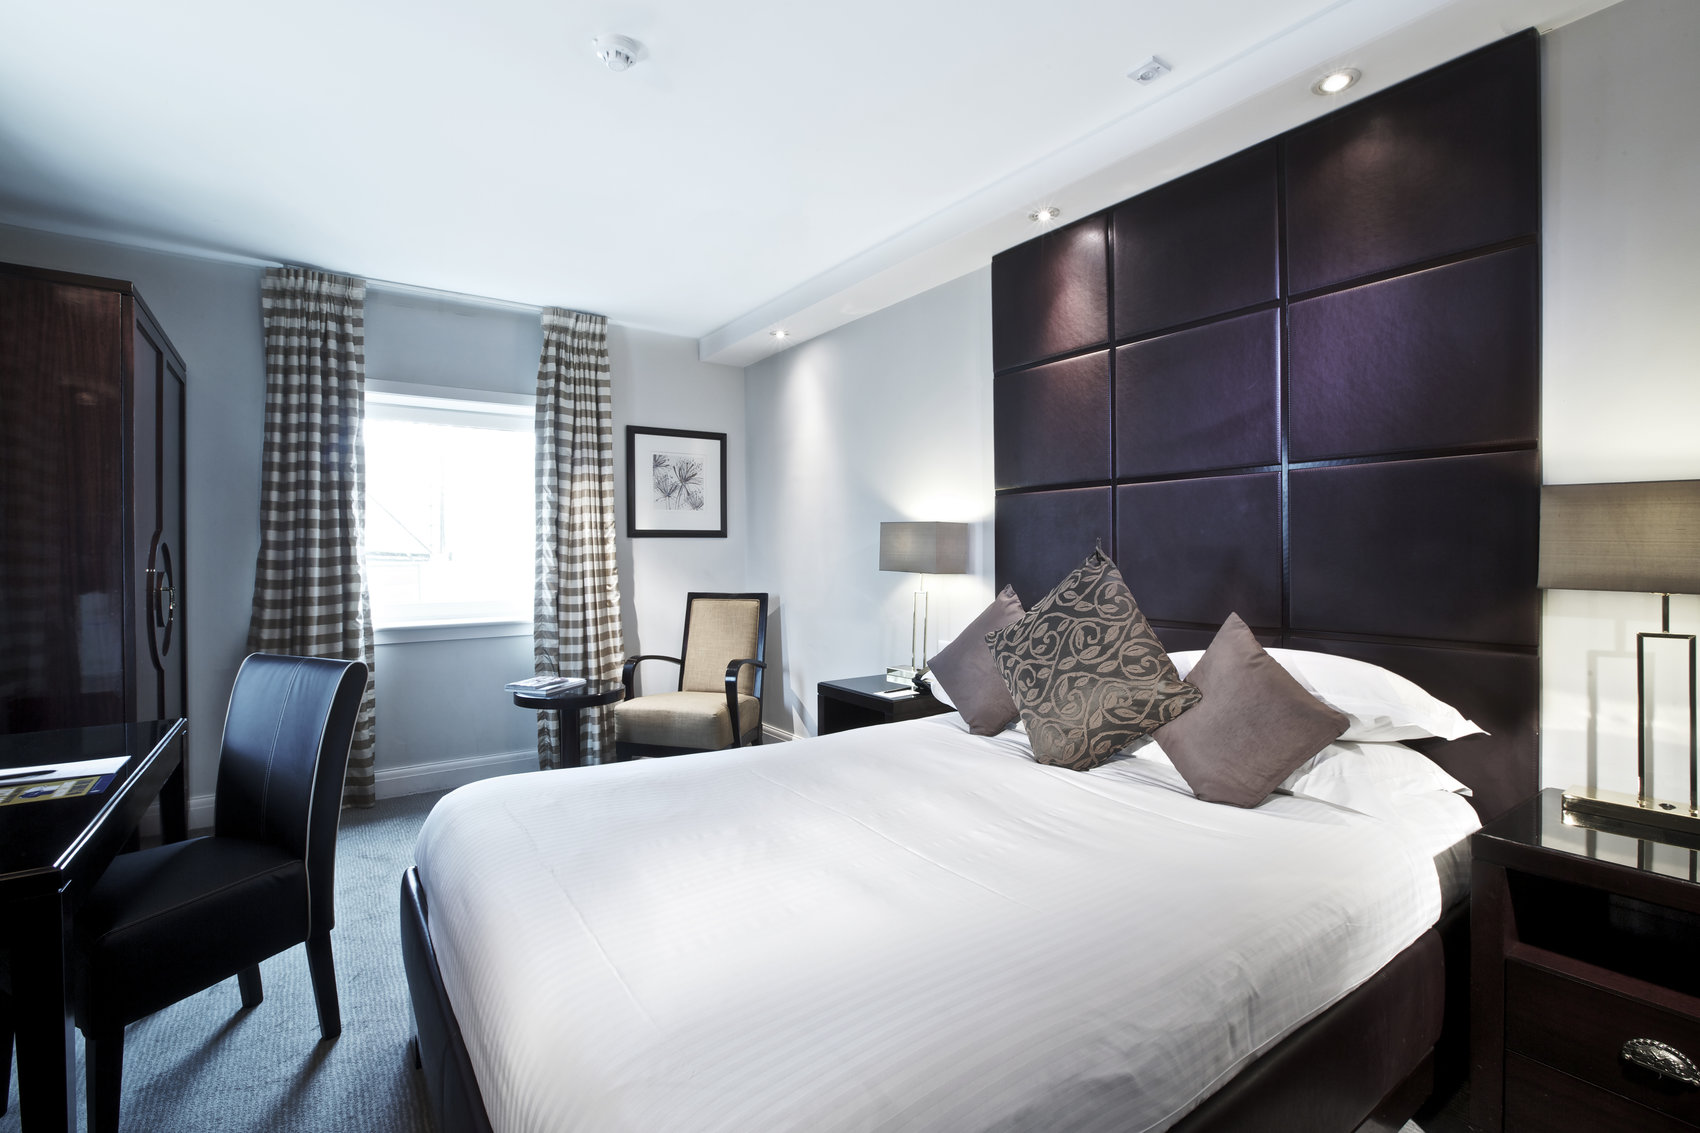 Millennium Copthorne Hotels At Chelsea Football Club